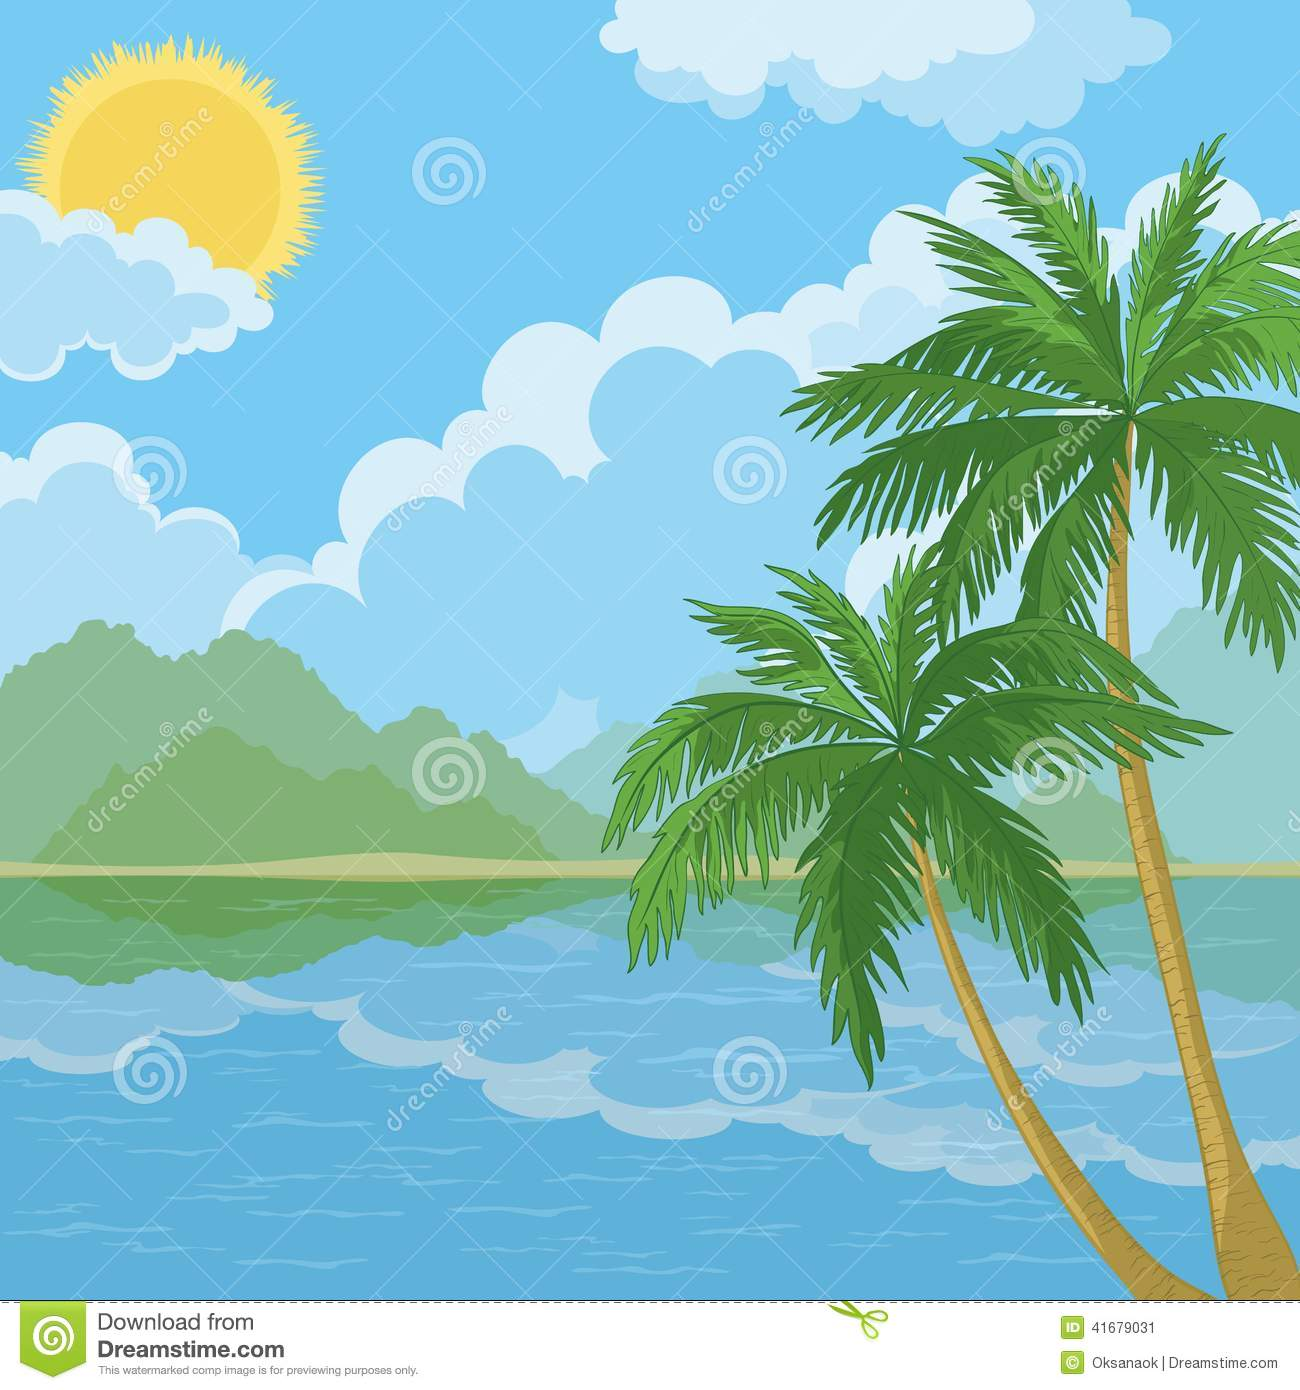 Tropical Sea Landscape With Palm Trees Stock Vector